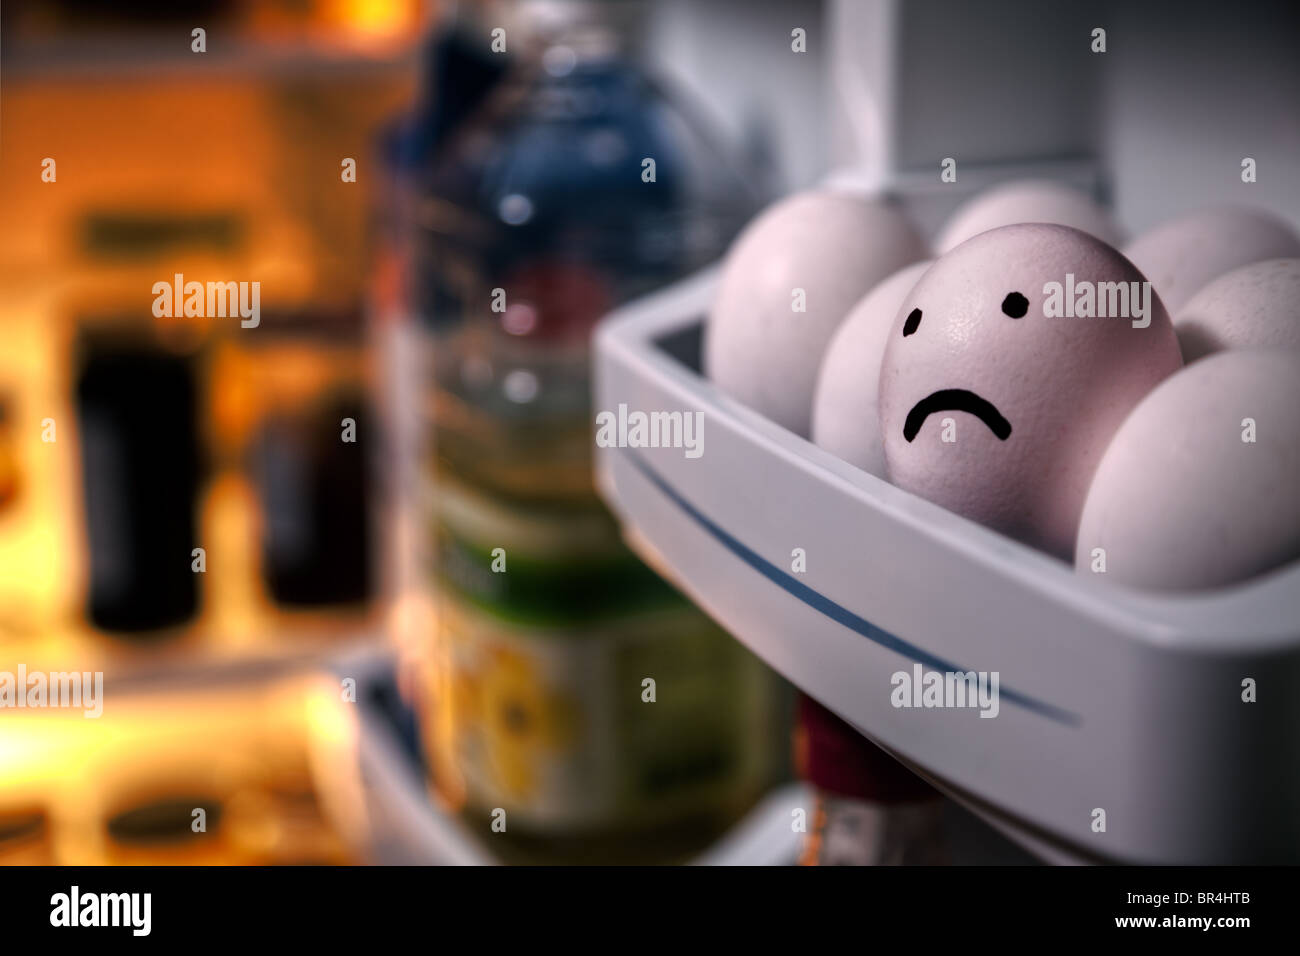 Sad egg - Stock Image